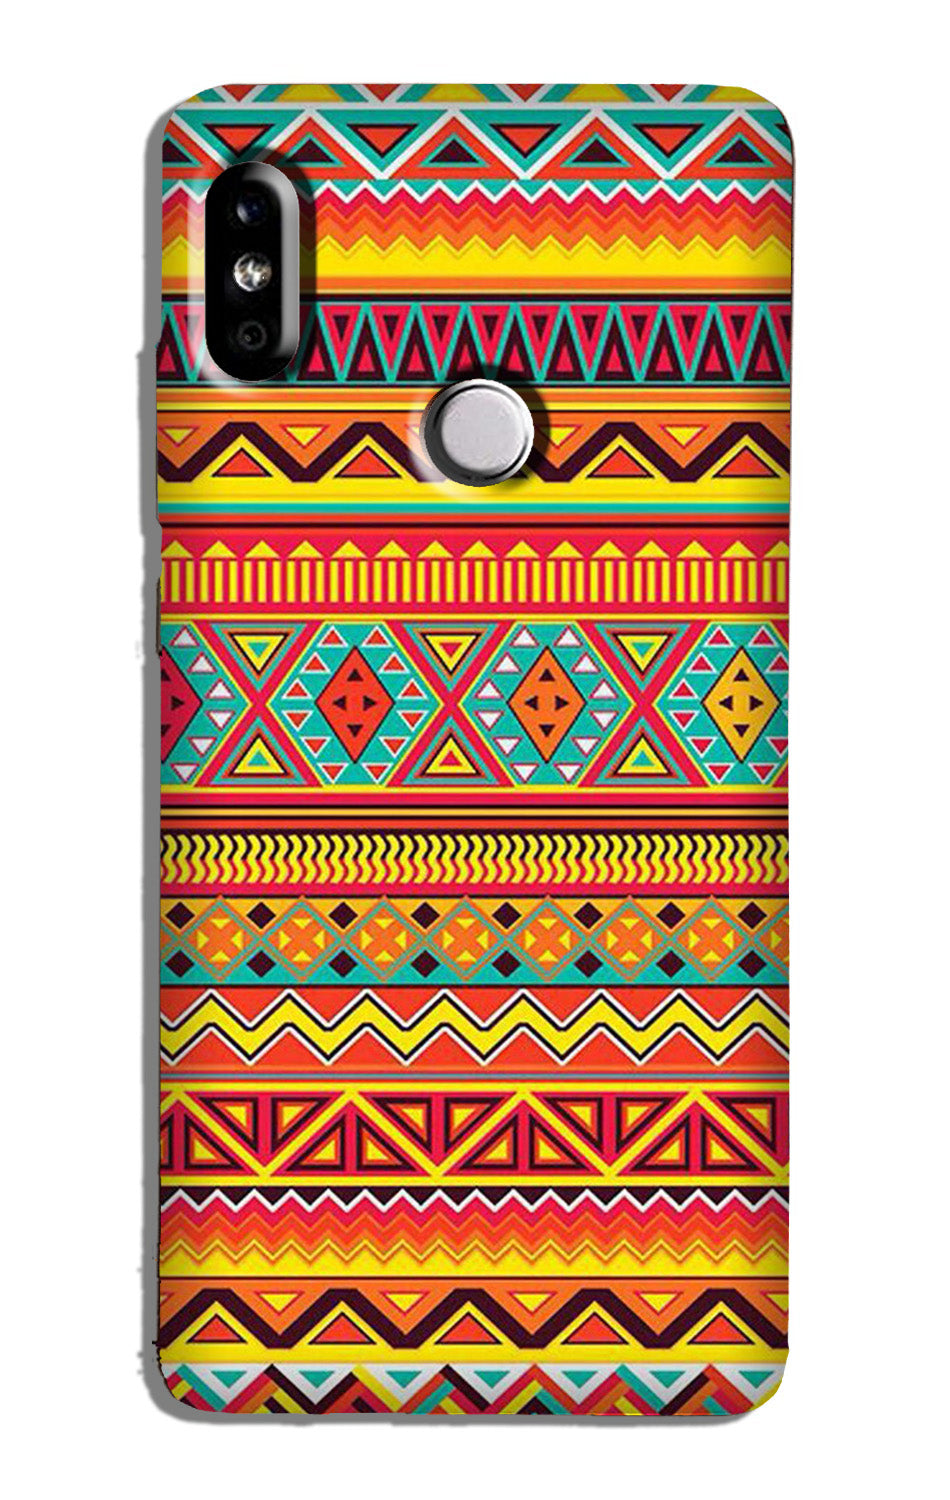 Zigzag line pattern Case for Redmi Note 6 Pro